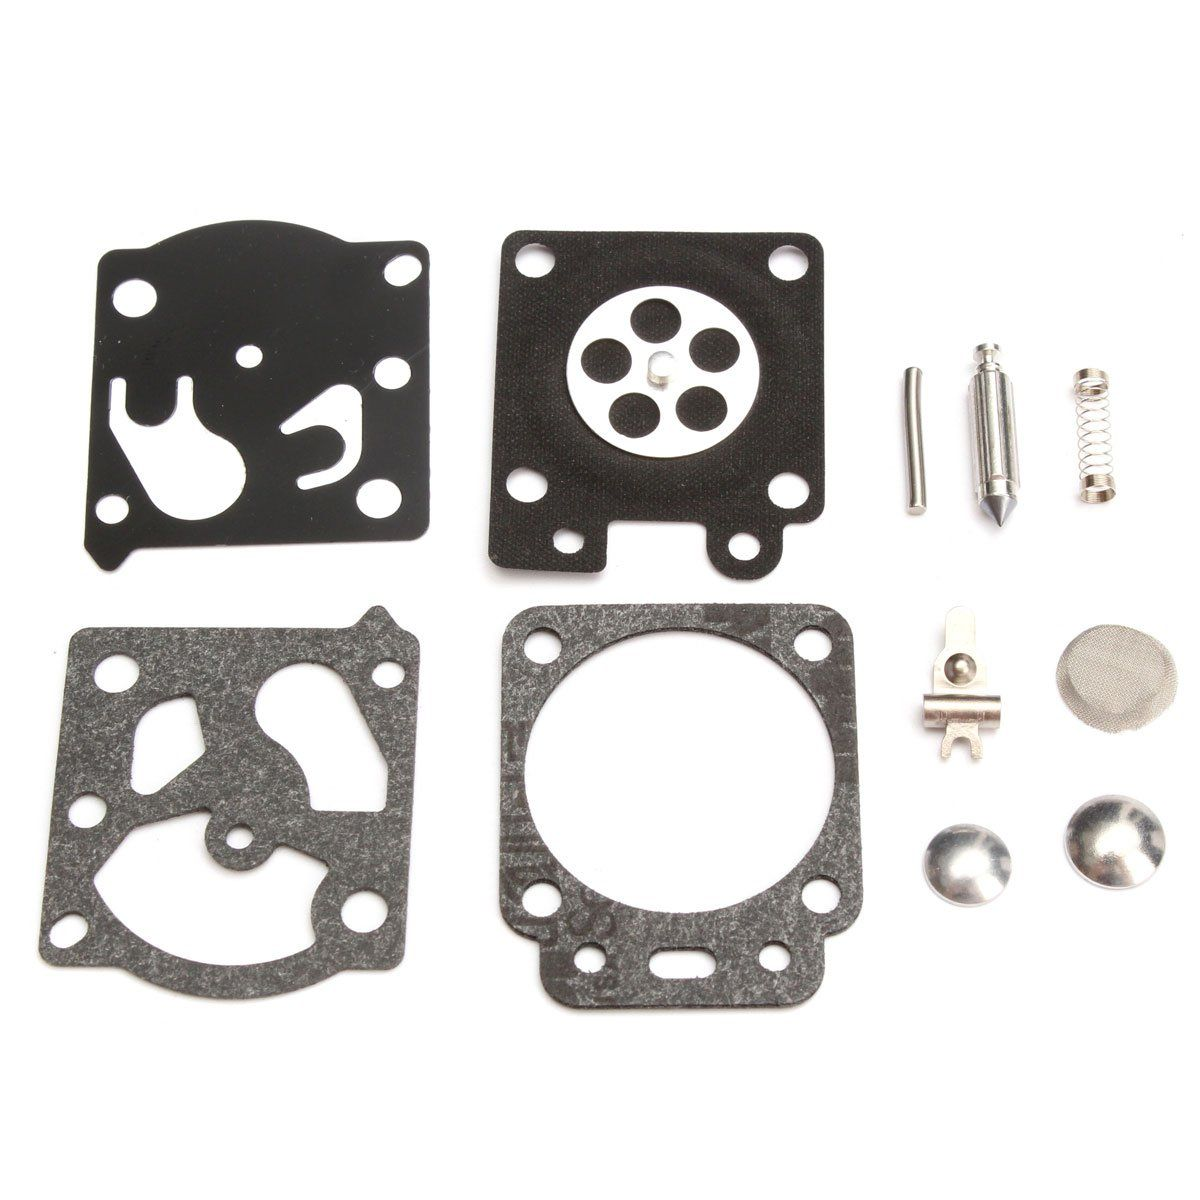 Ninth City Carburetor Repair Kit Rebuild Tool For Poulan Pro Craftsman Walbro Wt 875 A Awesome Products Selected By Anna Chu Craftsman Repair Motorcycle Diy